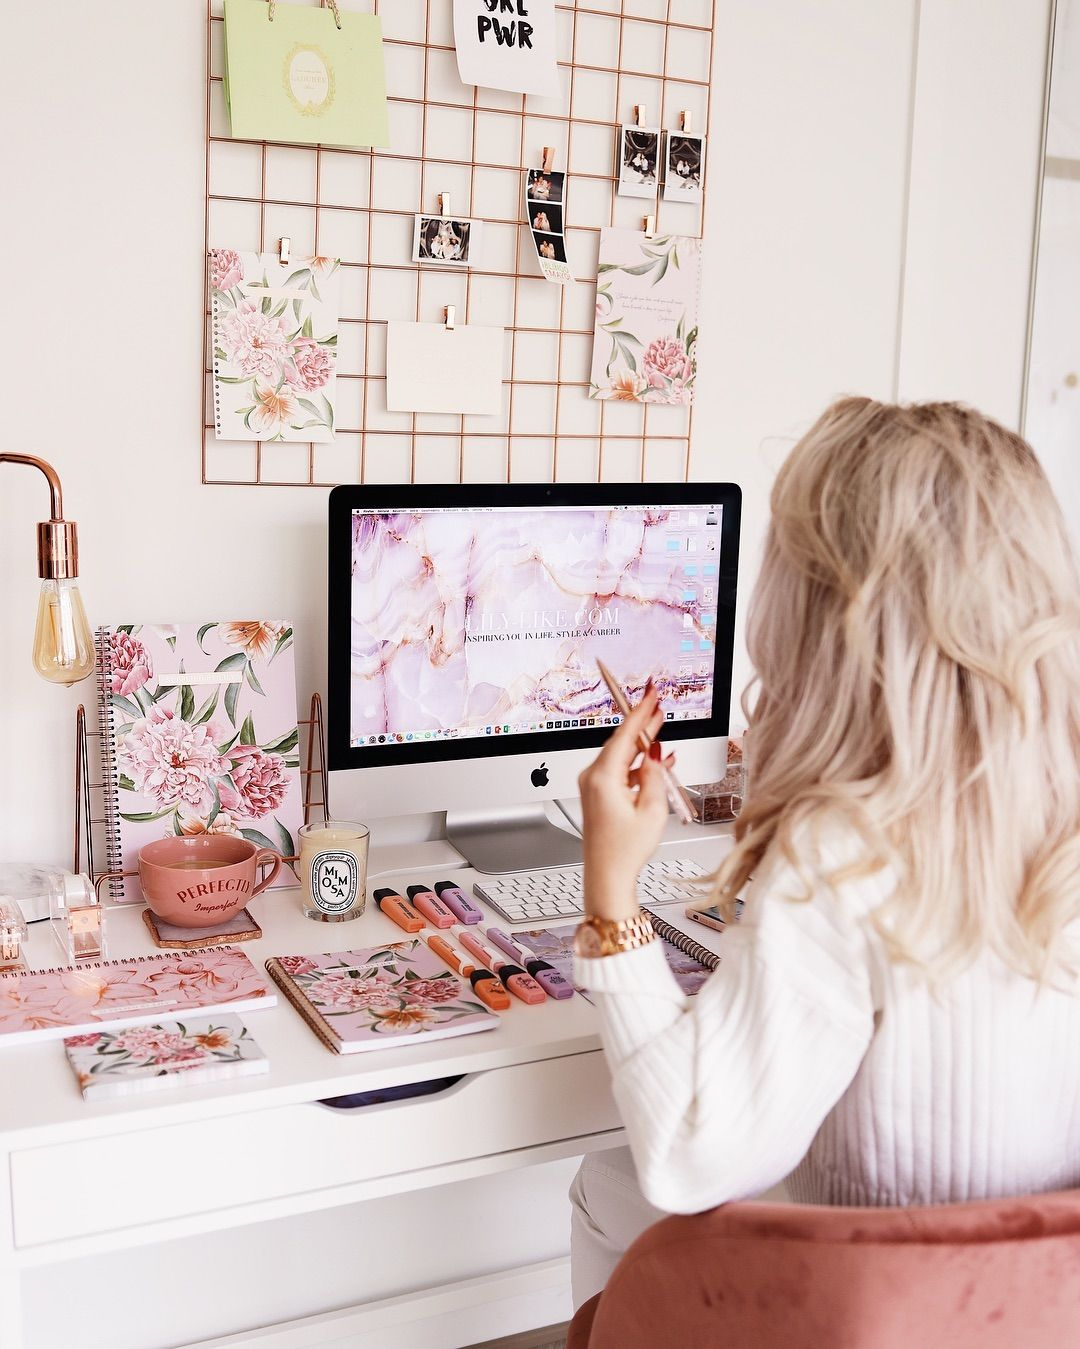 Lilia Lily Like On Instagram Hey Lovelies How Is Black Friday Treating You I M Excited To Share That My Stationery Websh Lily Instagram Gallery Wall